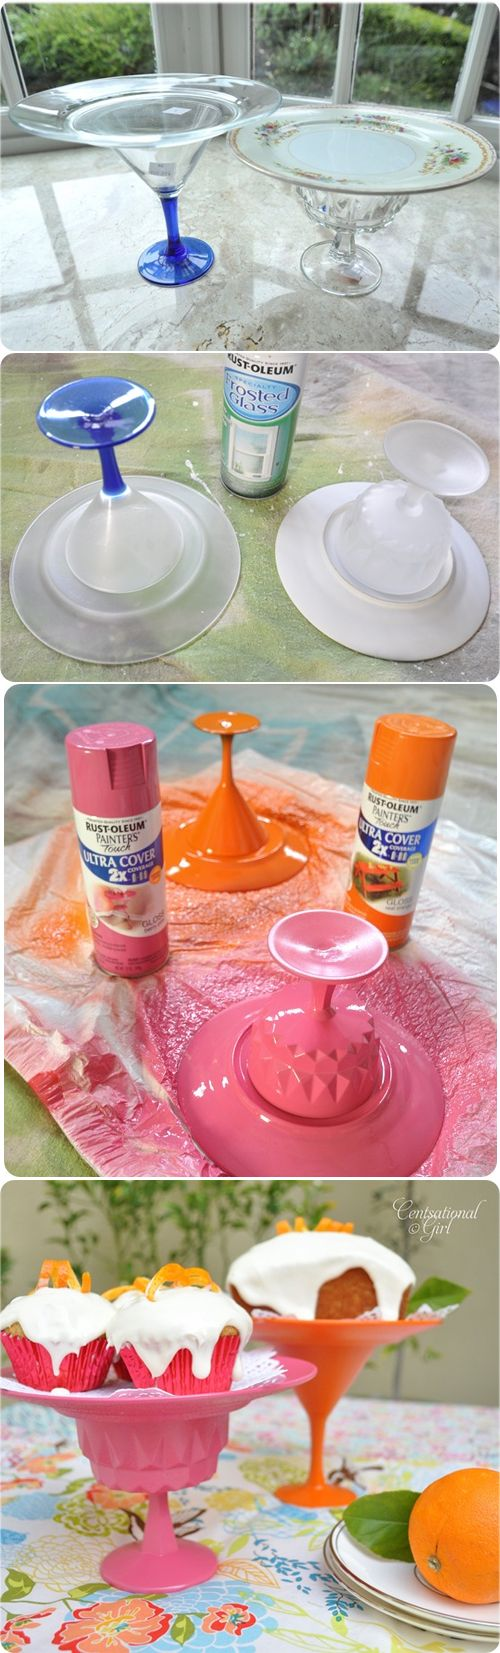 DIY Cake Stands! A good variation of the teacup/plate platters we're making!